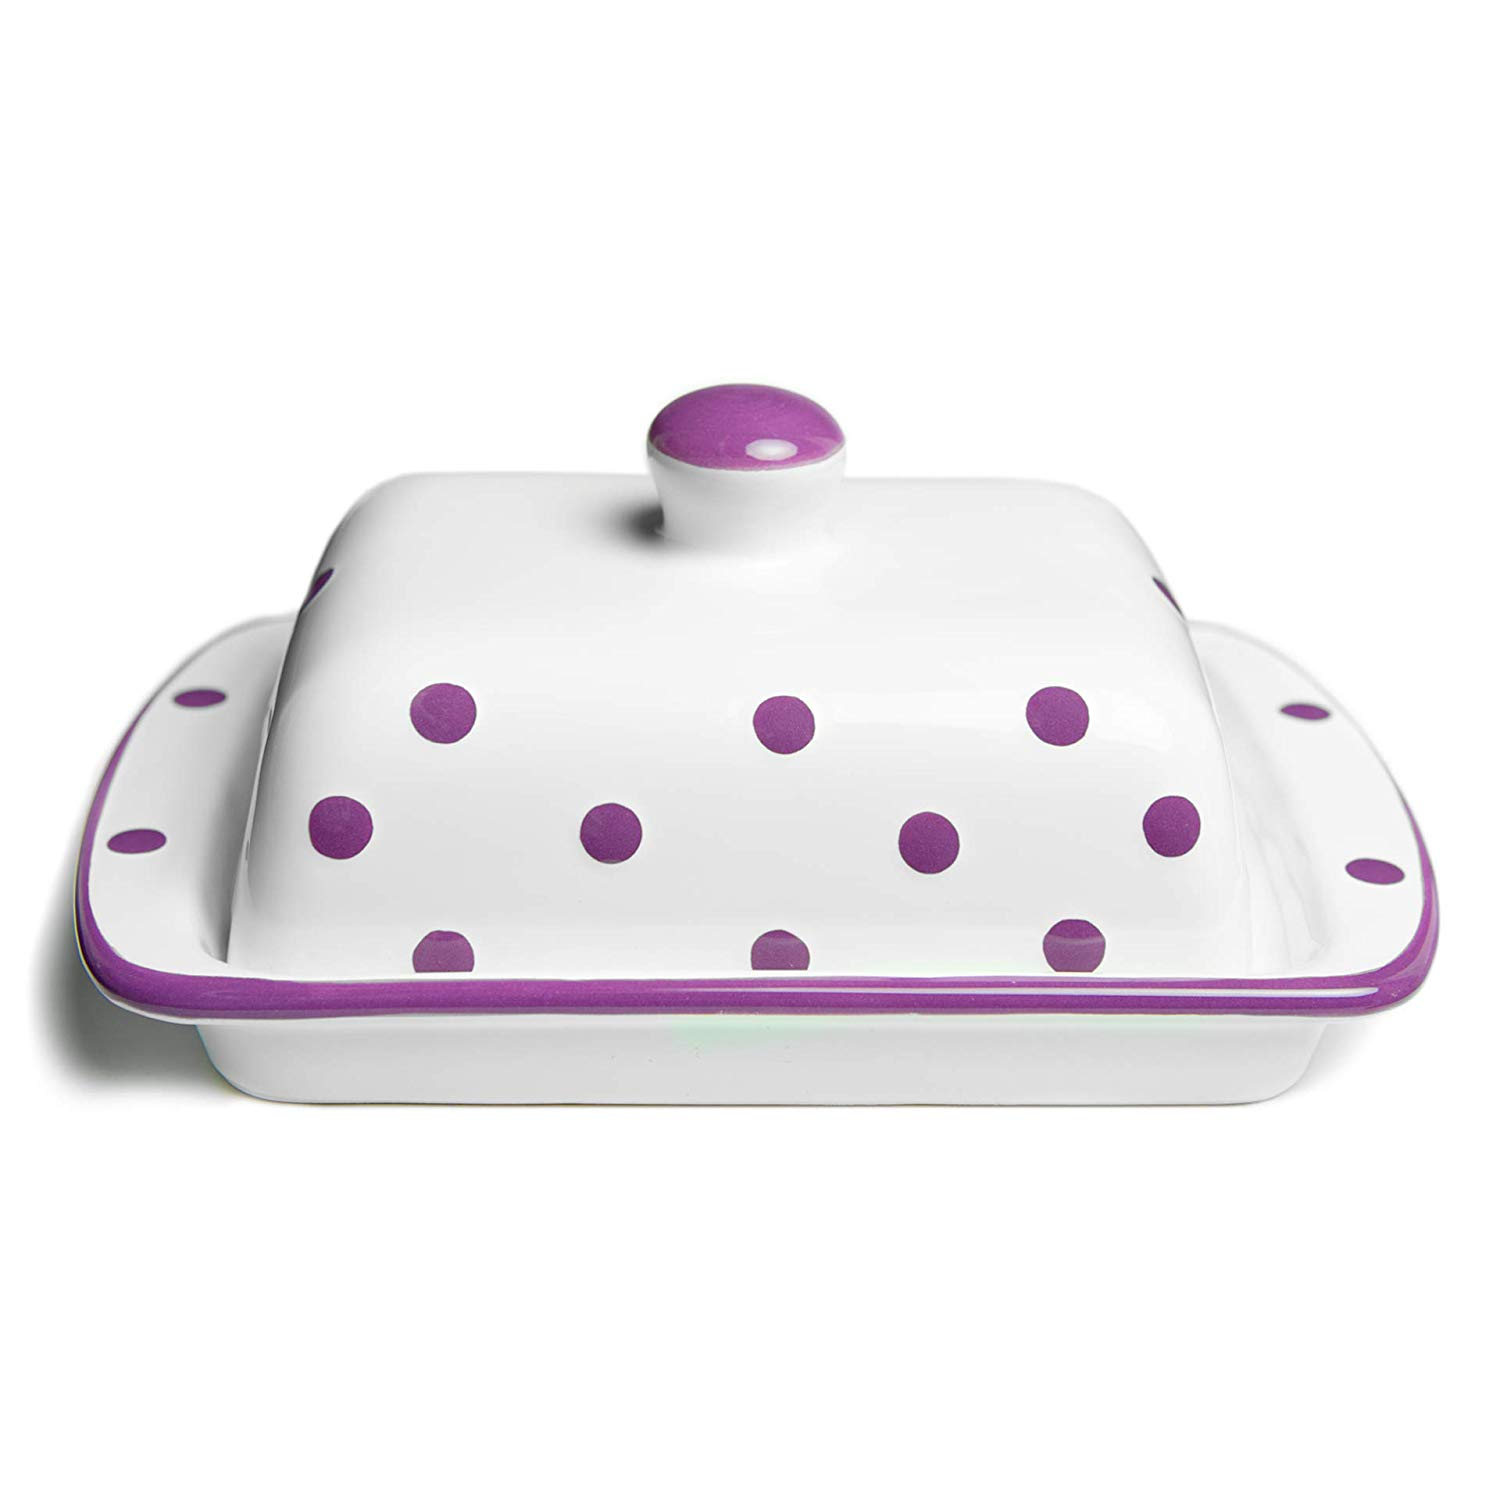 City to Cottage Handmade Ceramic European Covered Butter Dish with Lid | Unique White and Purple Polka Dot Pottery Butter Keeper | Housewarming Gift